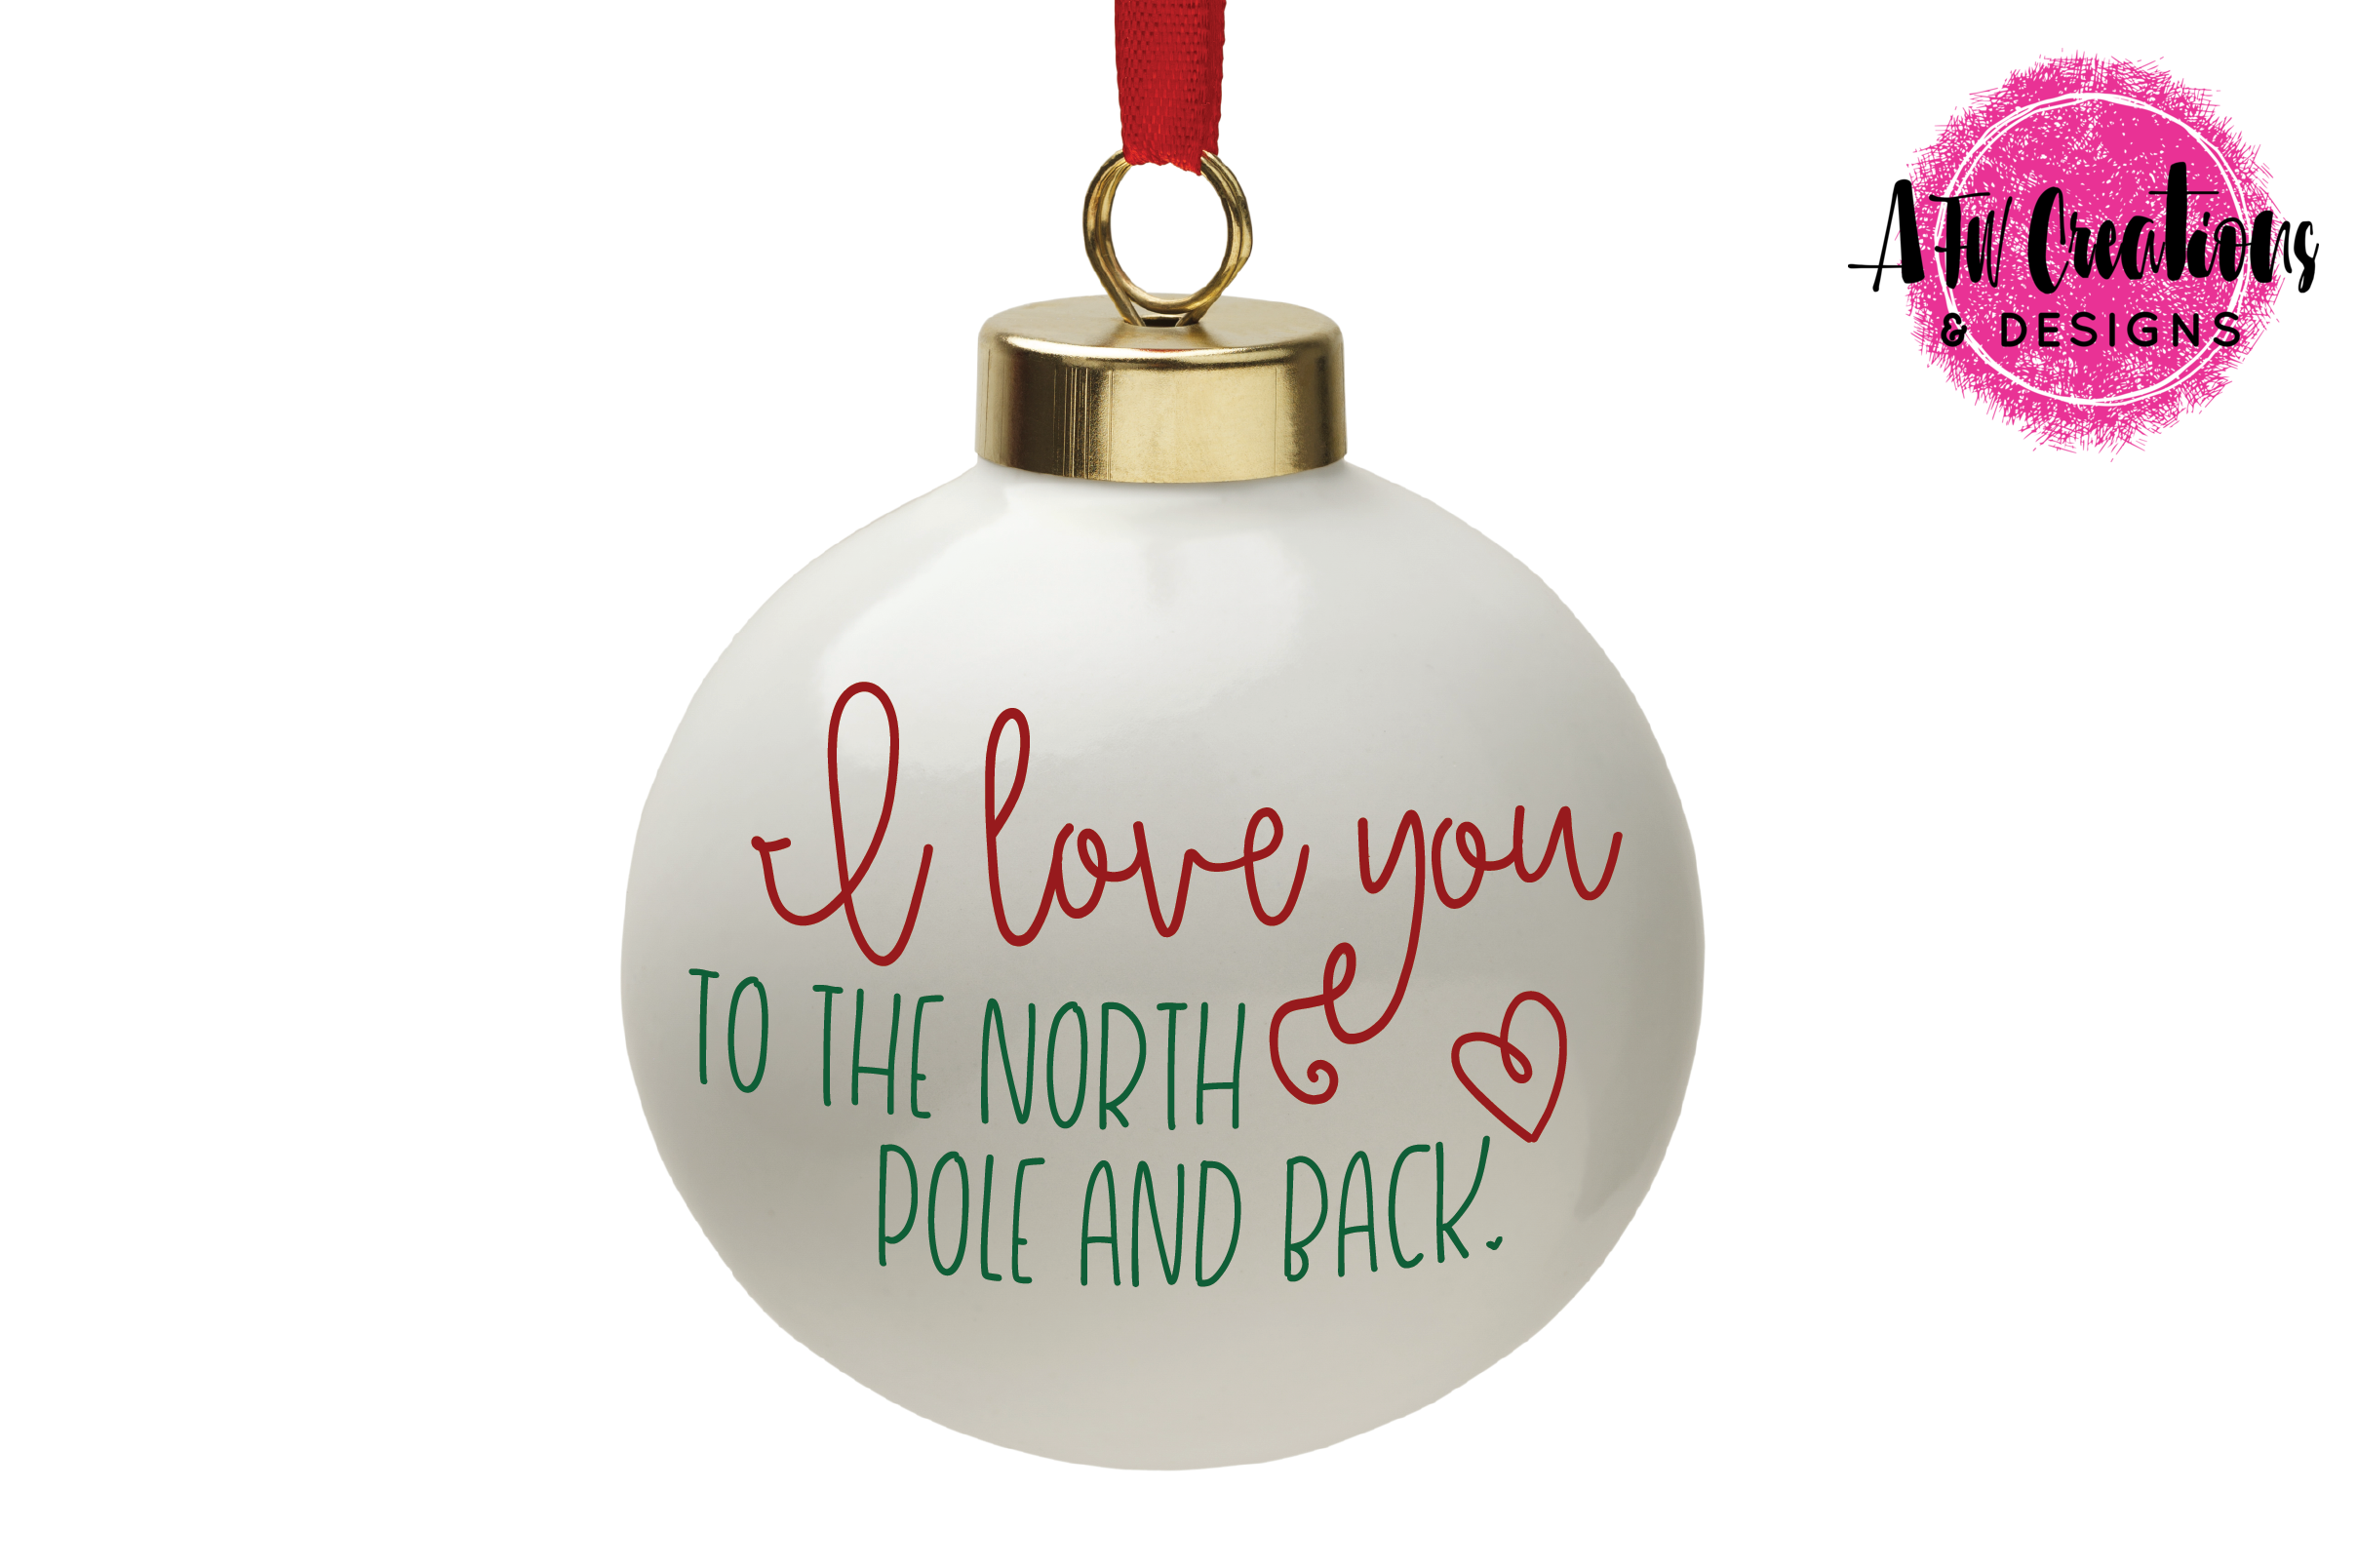 Love You To The North Pole & Back - SVG, DXF, EPS Cut File example image 2